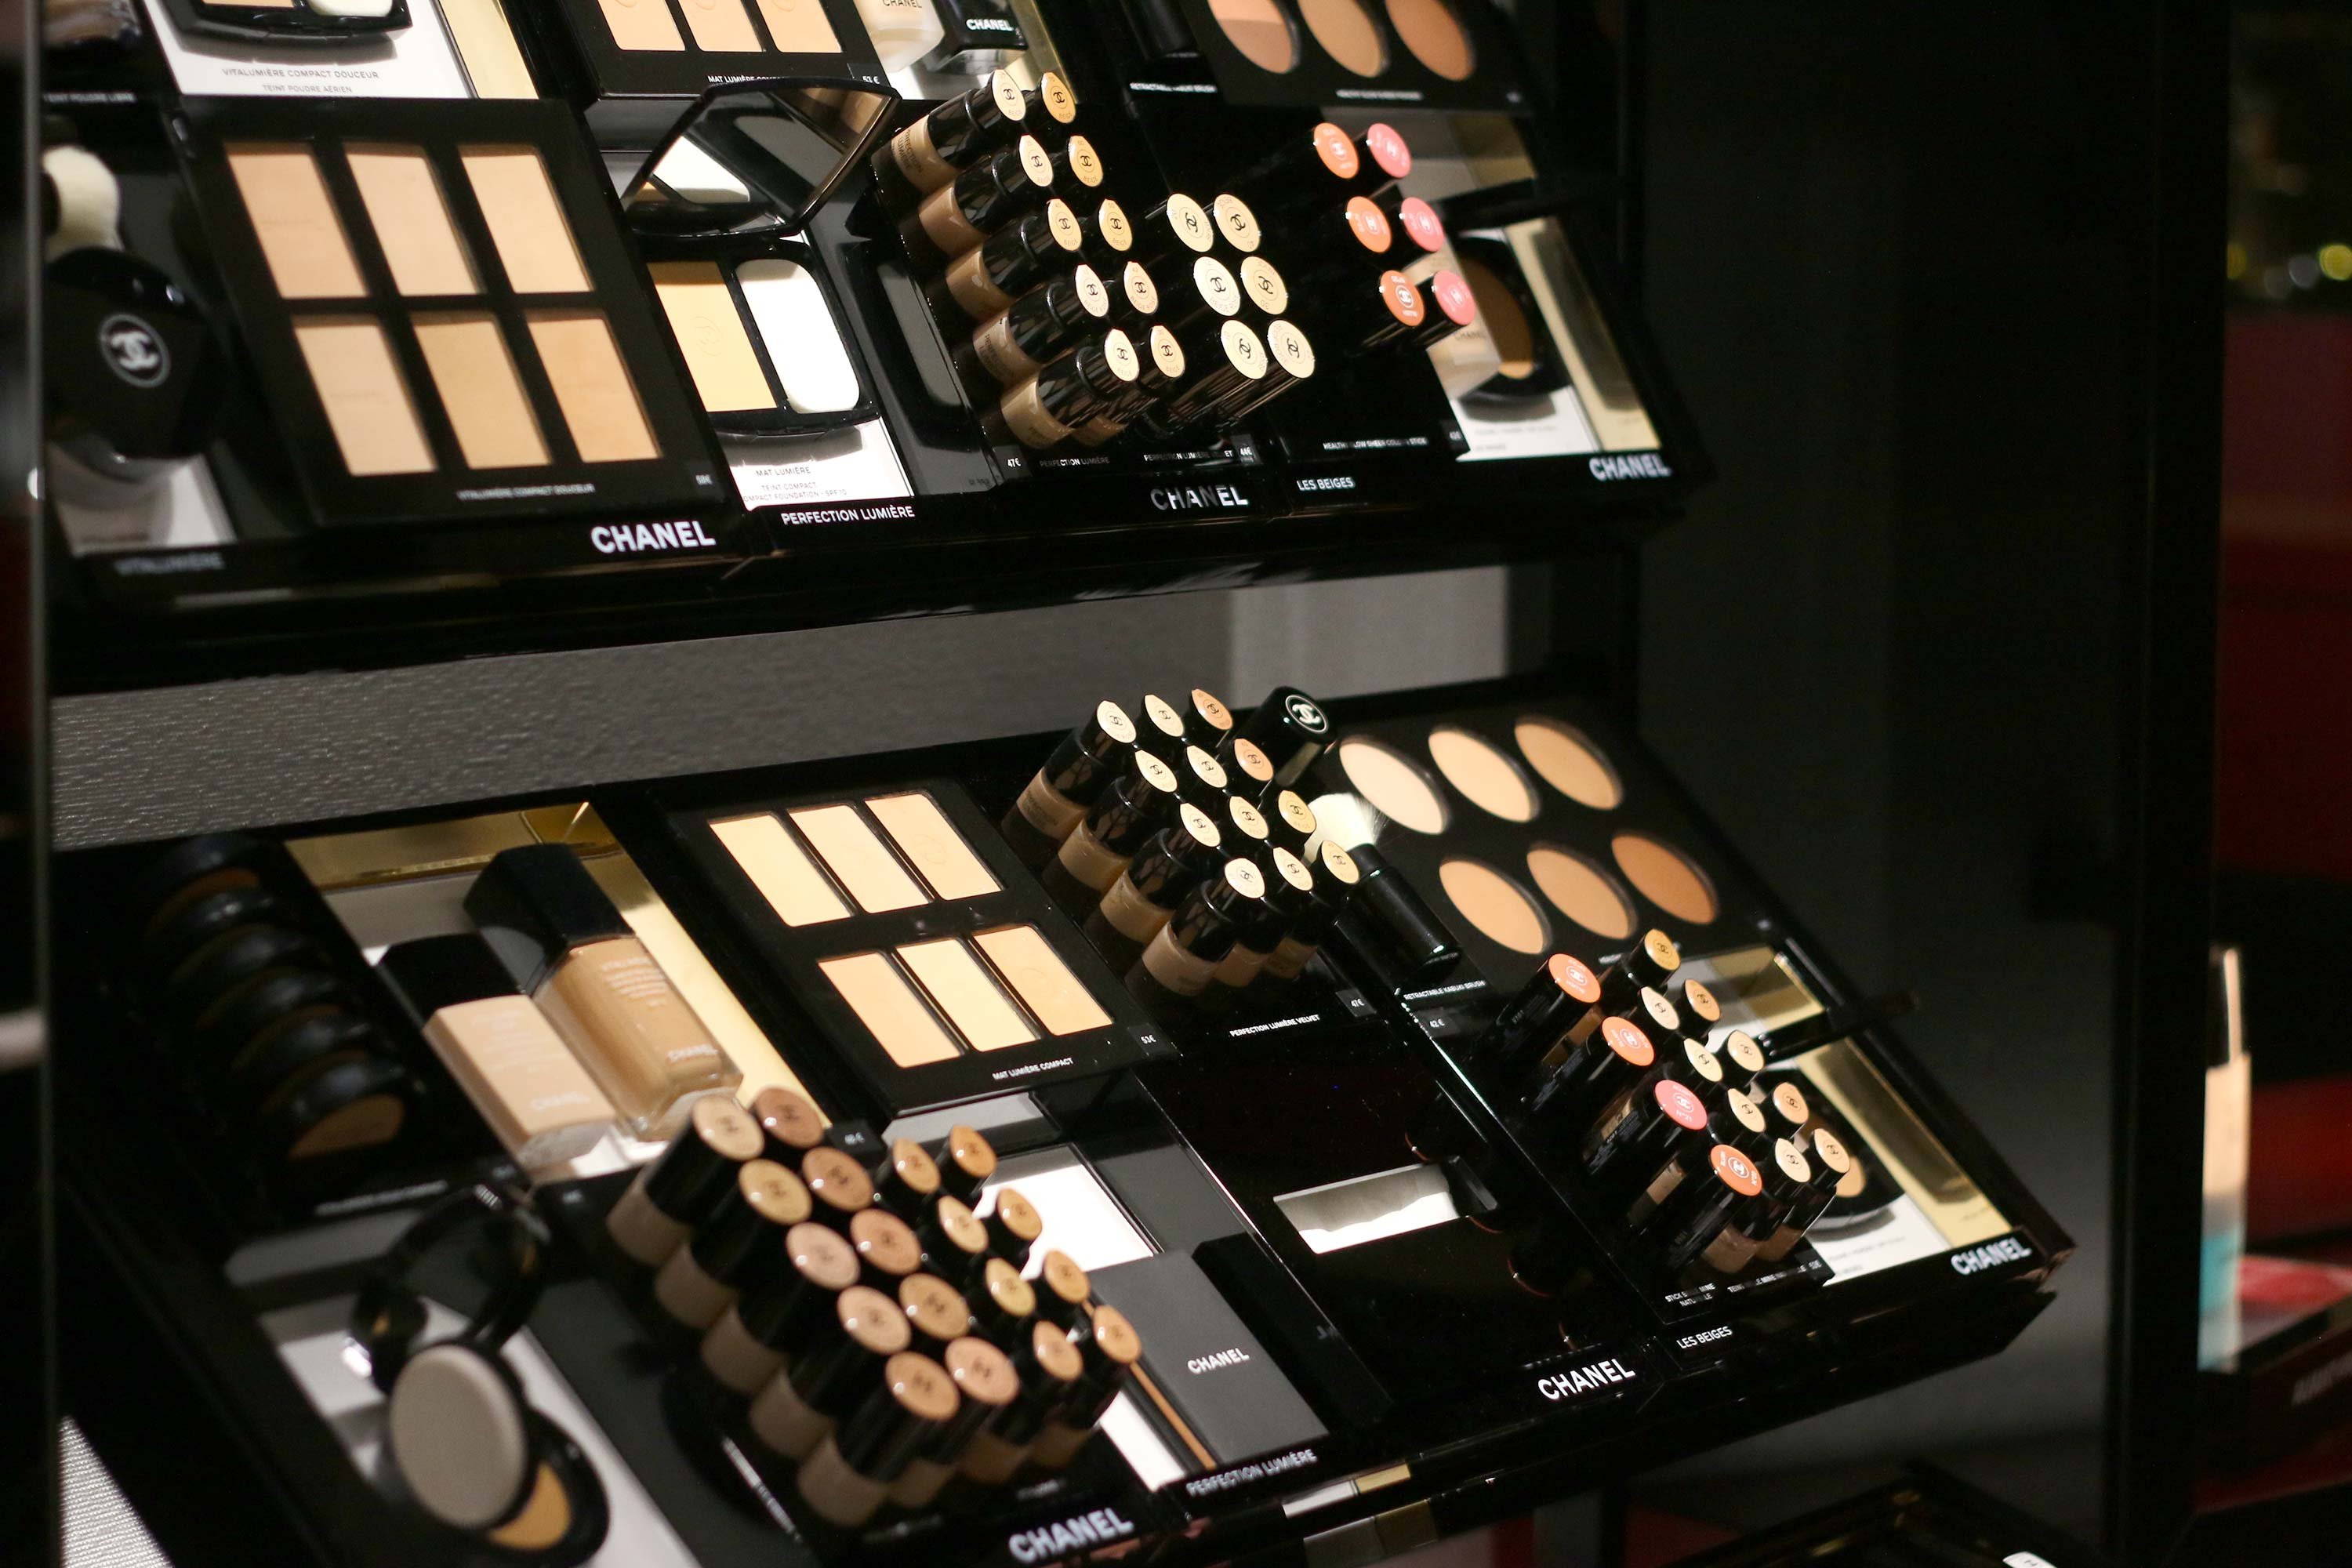 chanel-beauty-boutique-hamburg-5